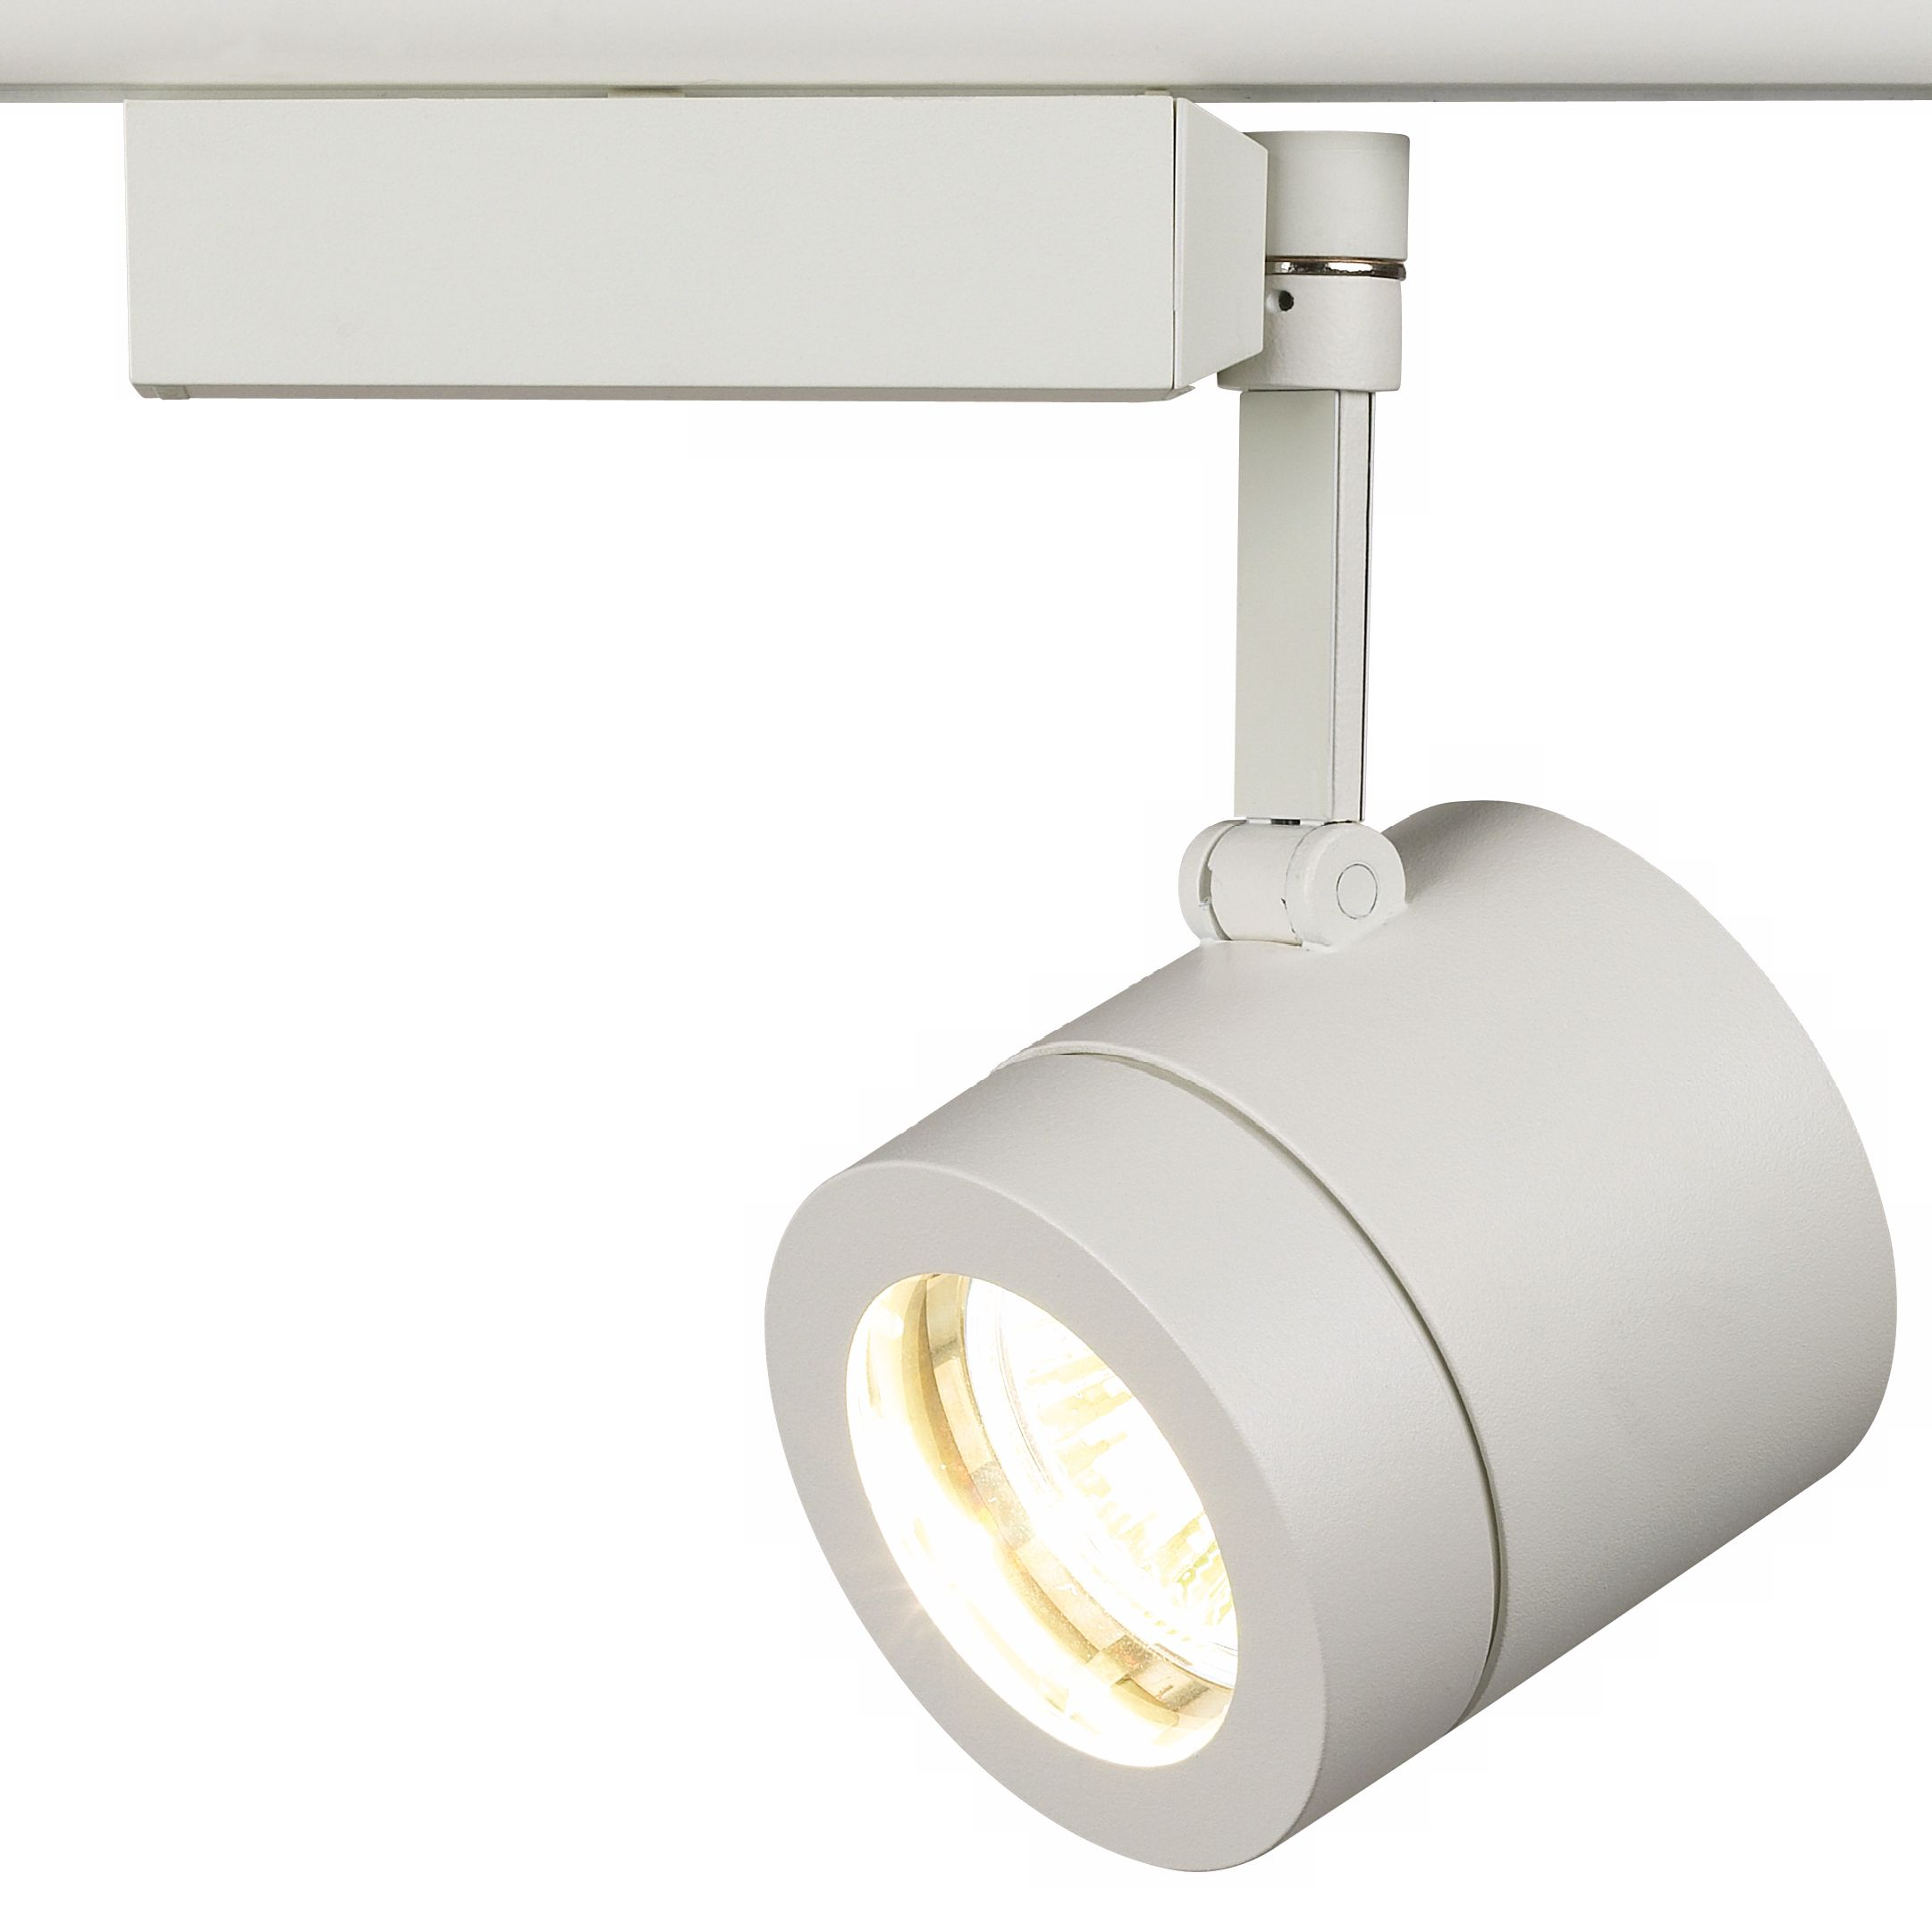 Lightolier Classic White MR16 Cylinder Track Light  sc 1 st  L&s Plus & Lightolier Track Lighting | Lamps Plus azcodes.com